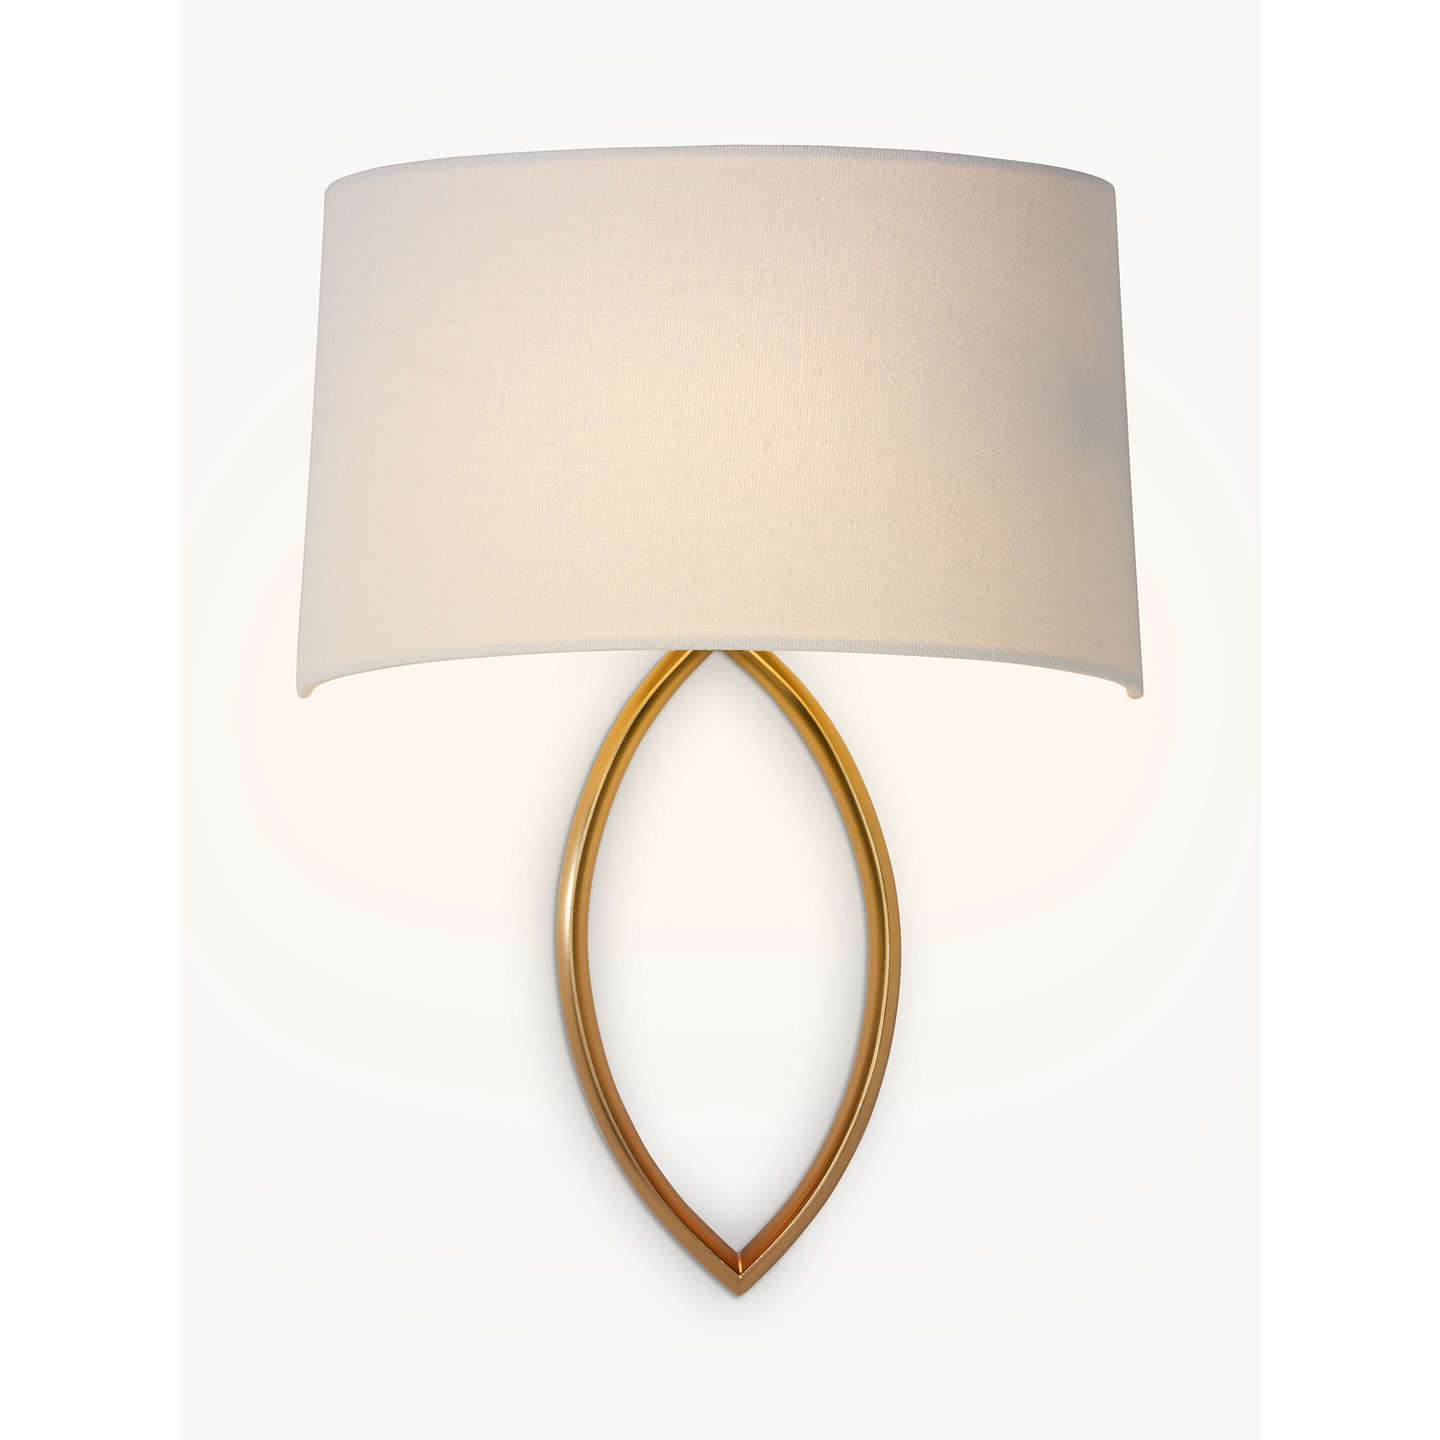 Offer john lewis lopez shaded wall light at john lewis buyjohn lewis lopez shaded wall light online at johnlewis aloadofball Choice Image